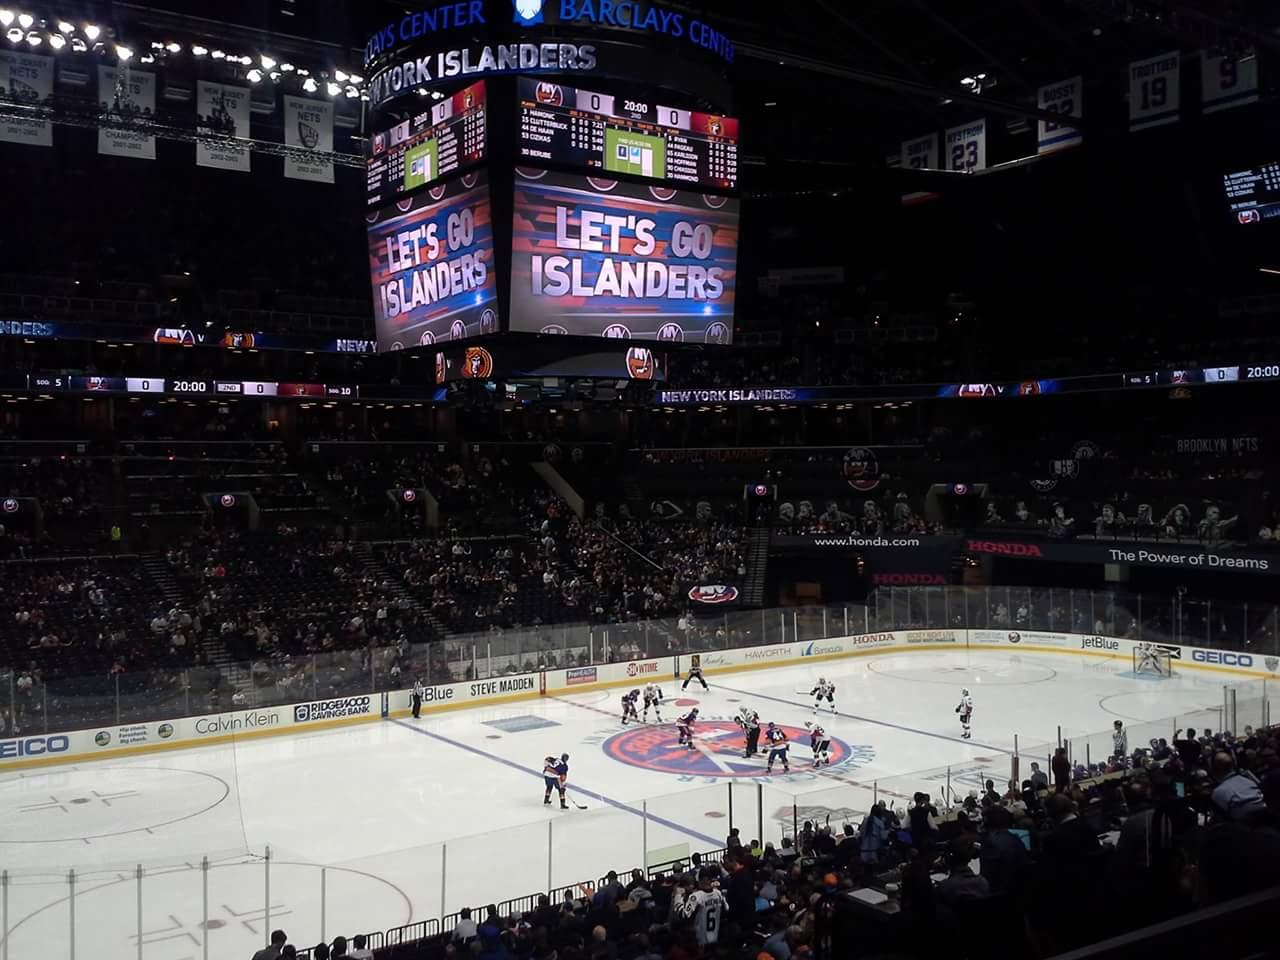 Barclays Center Section 111 Row 7 Seat 1